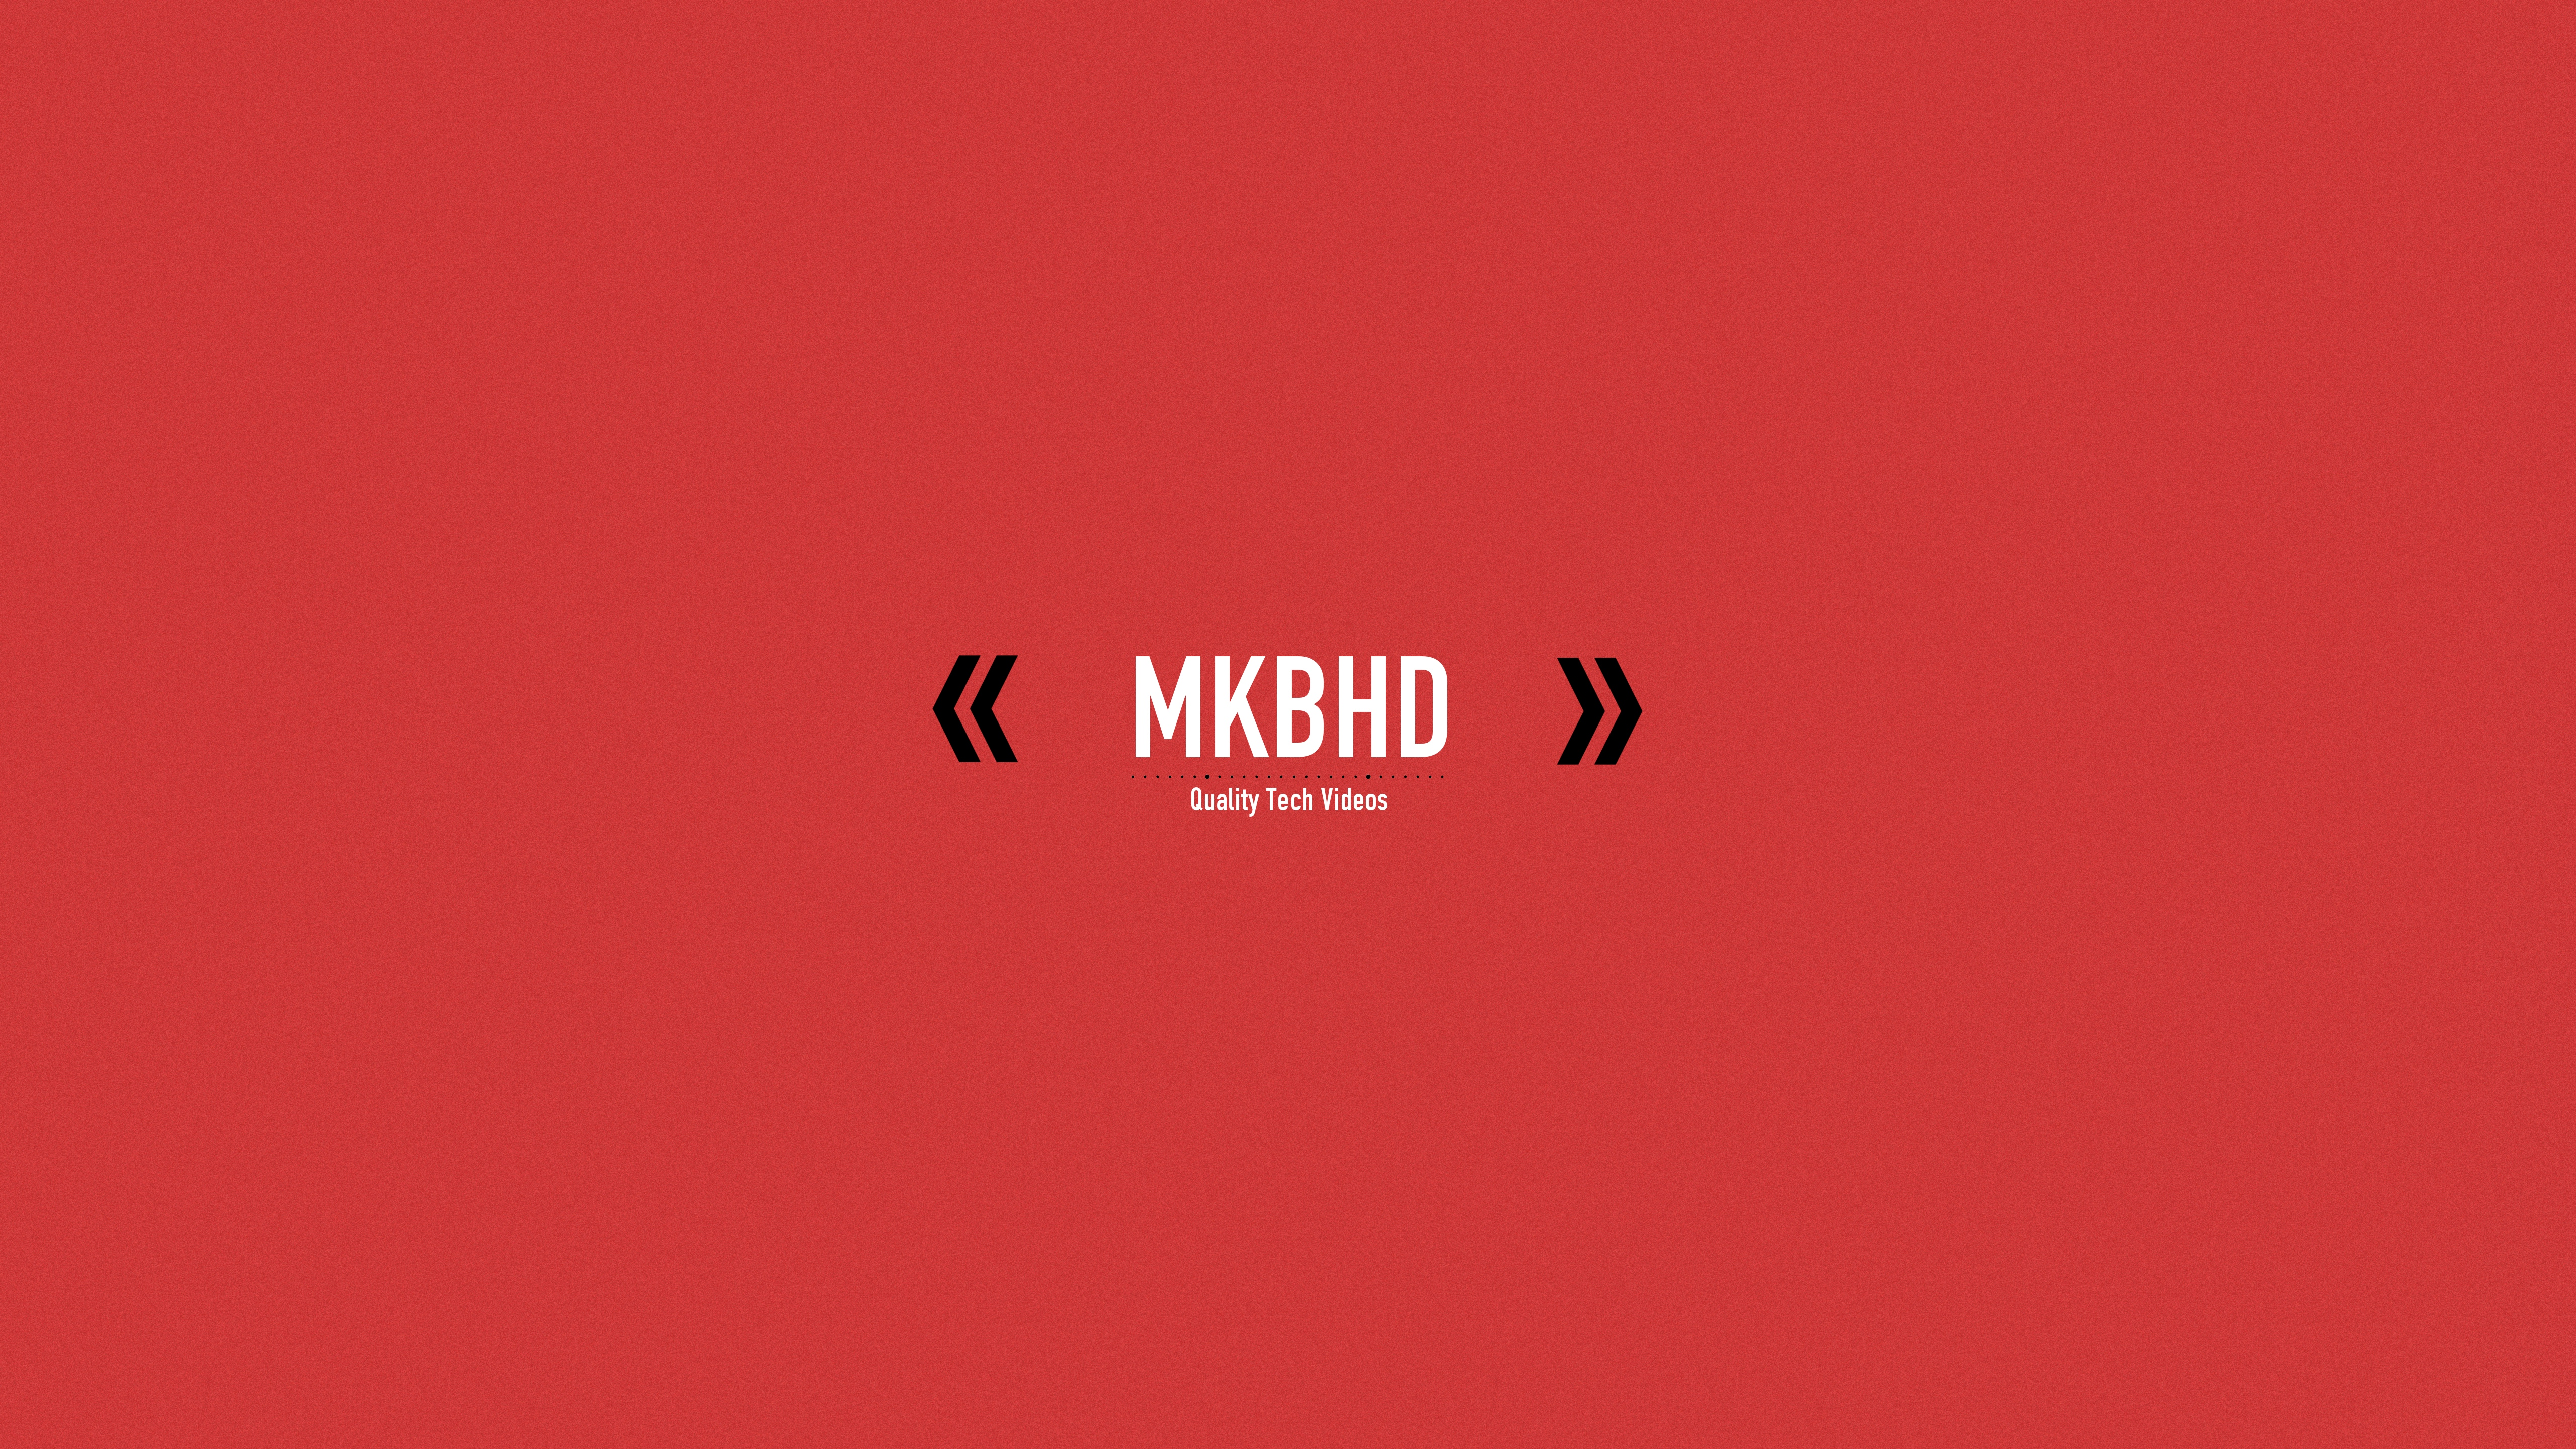 Ipad Iphone Hd Wallpaper Free: Official MKBHD Wallpapers For IPhone, IPad & Desktop